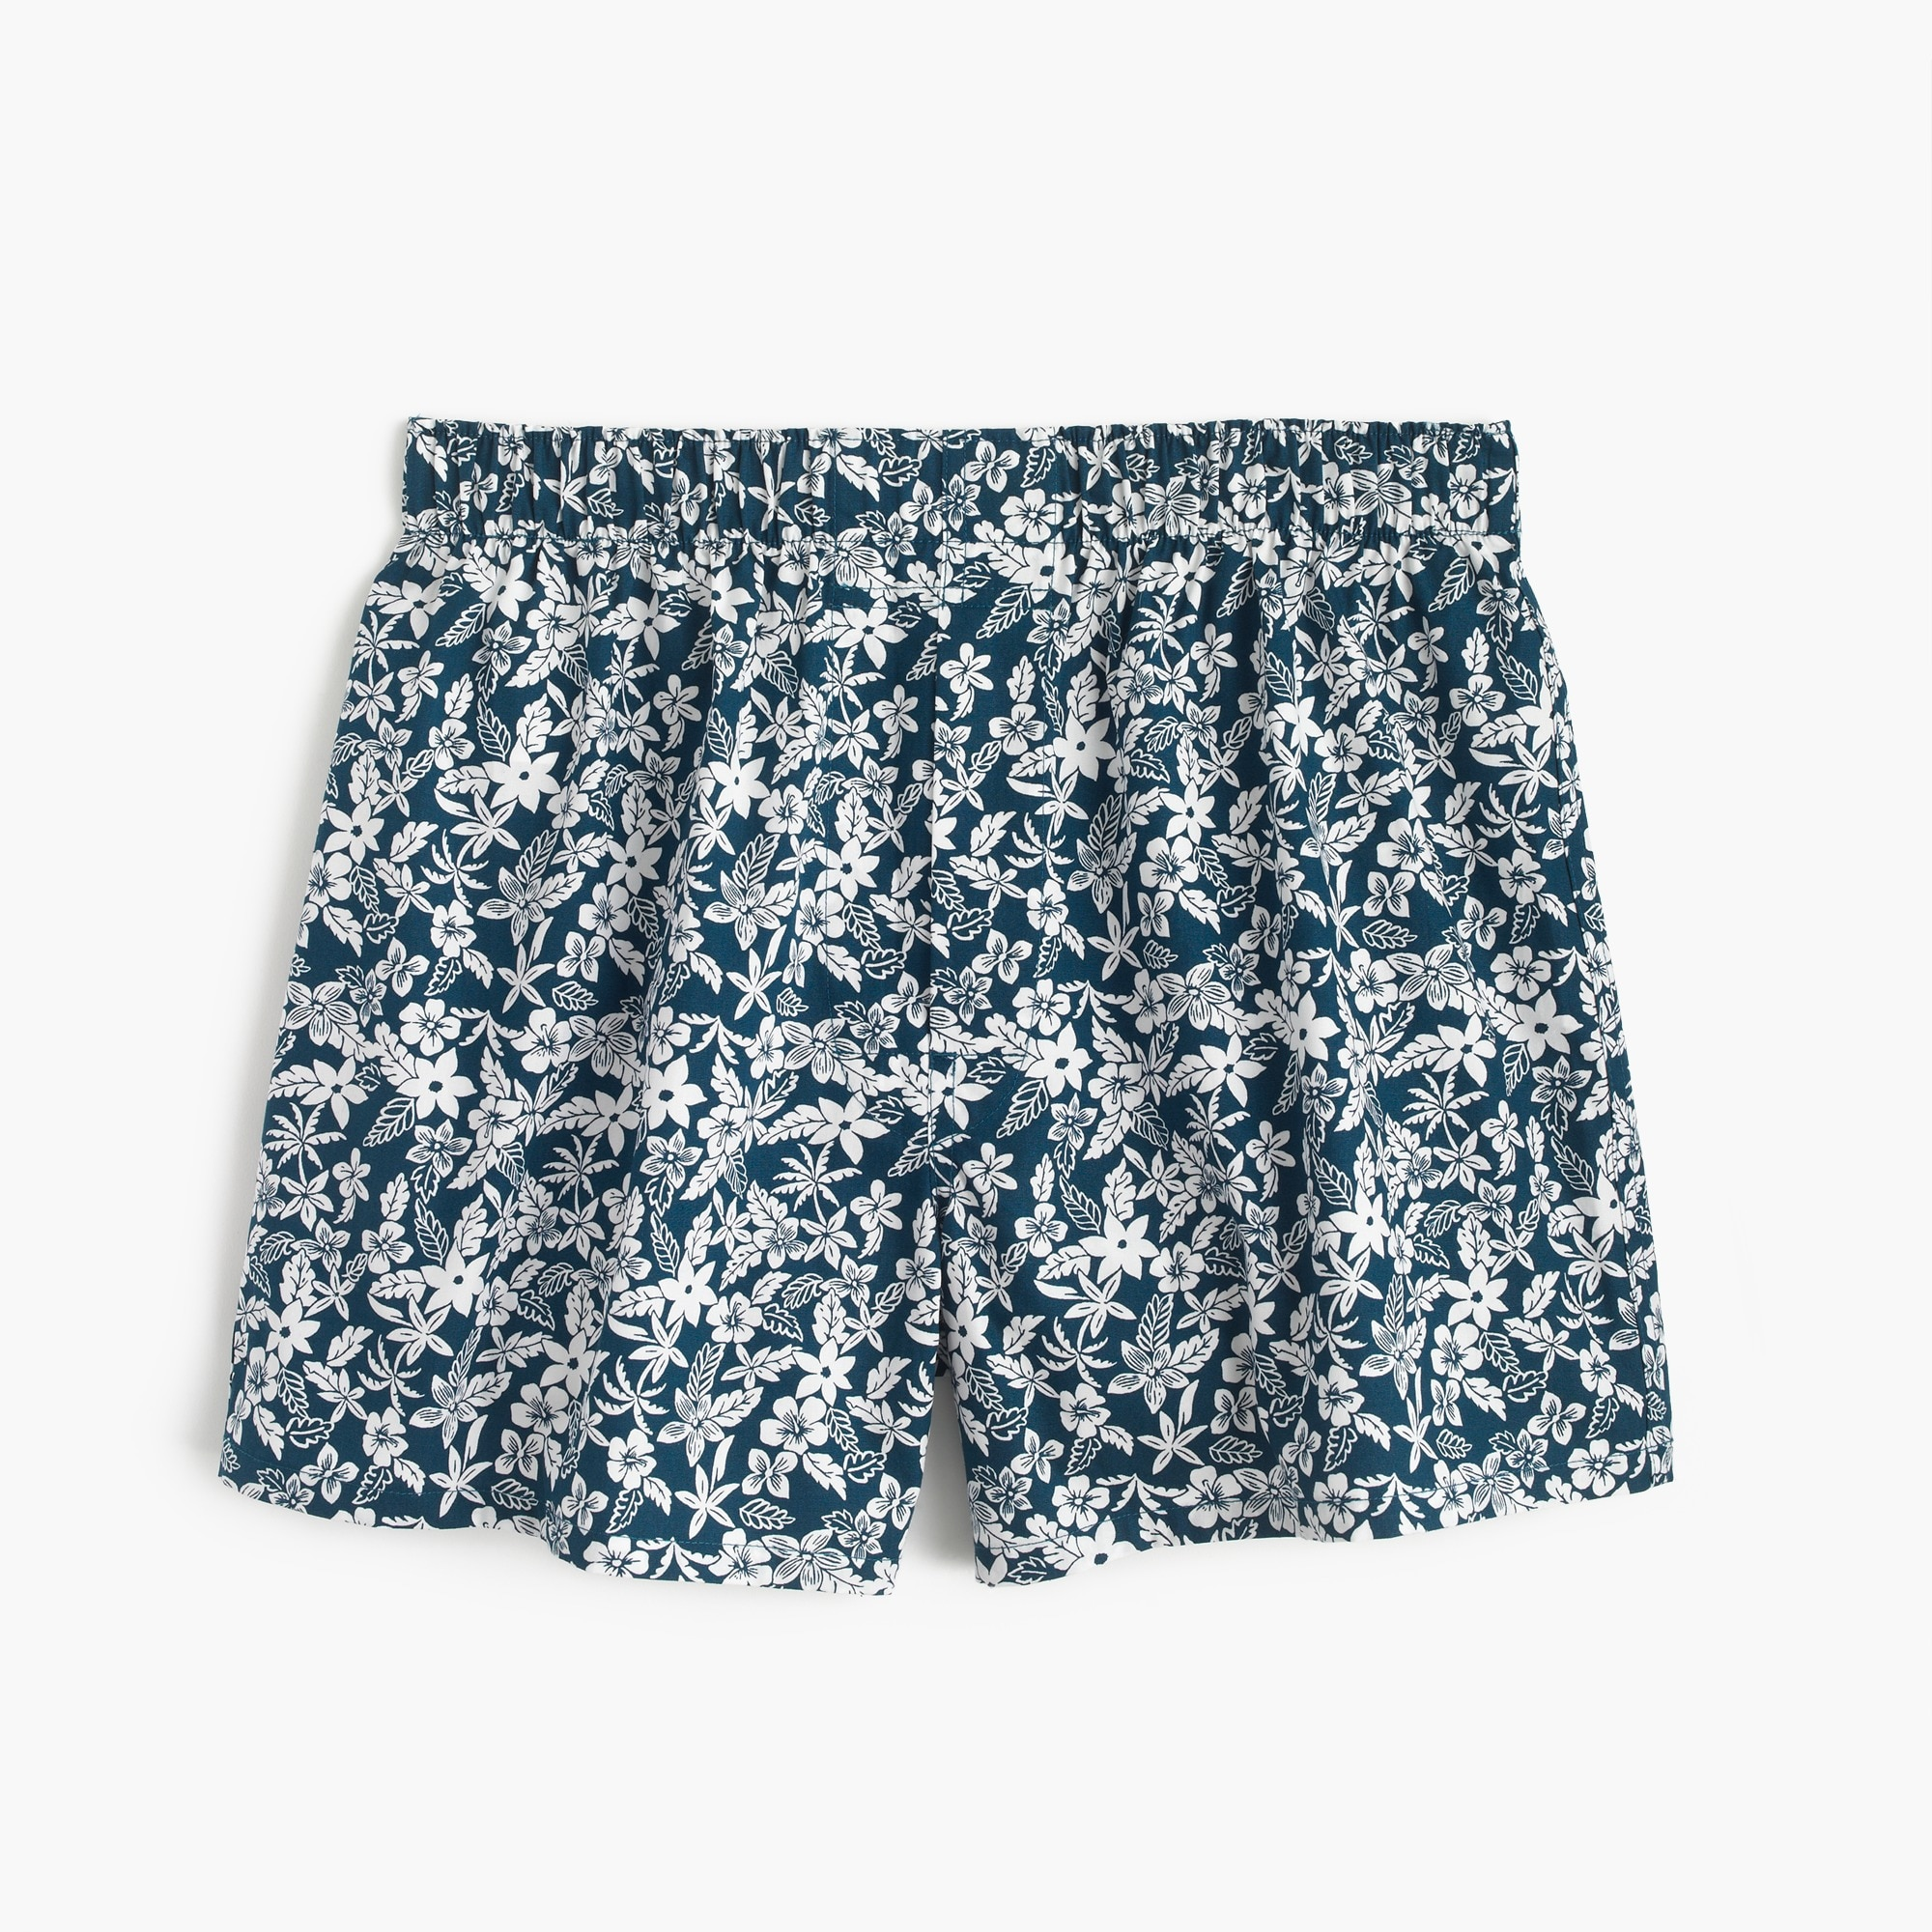 floral print boxers in navy : men boxers